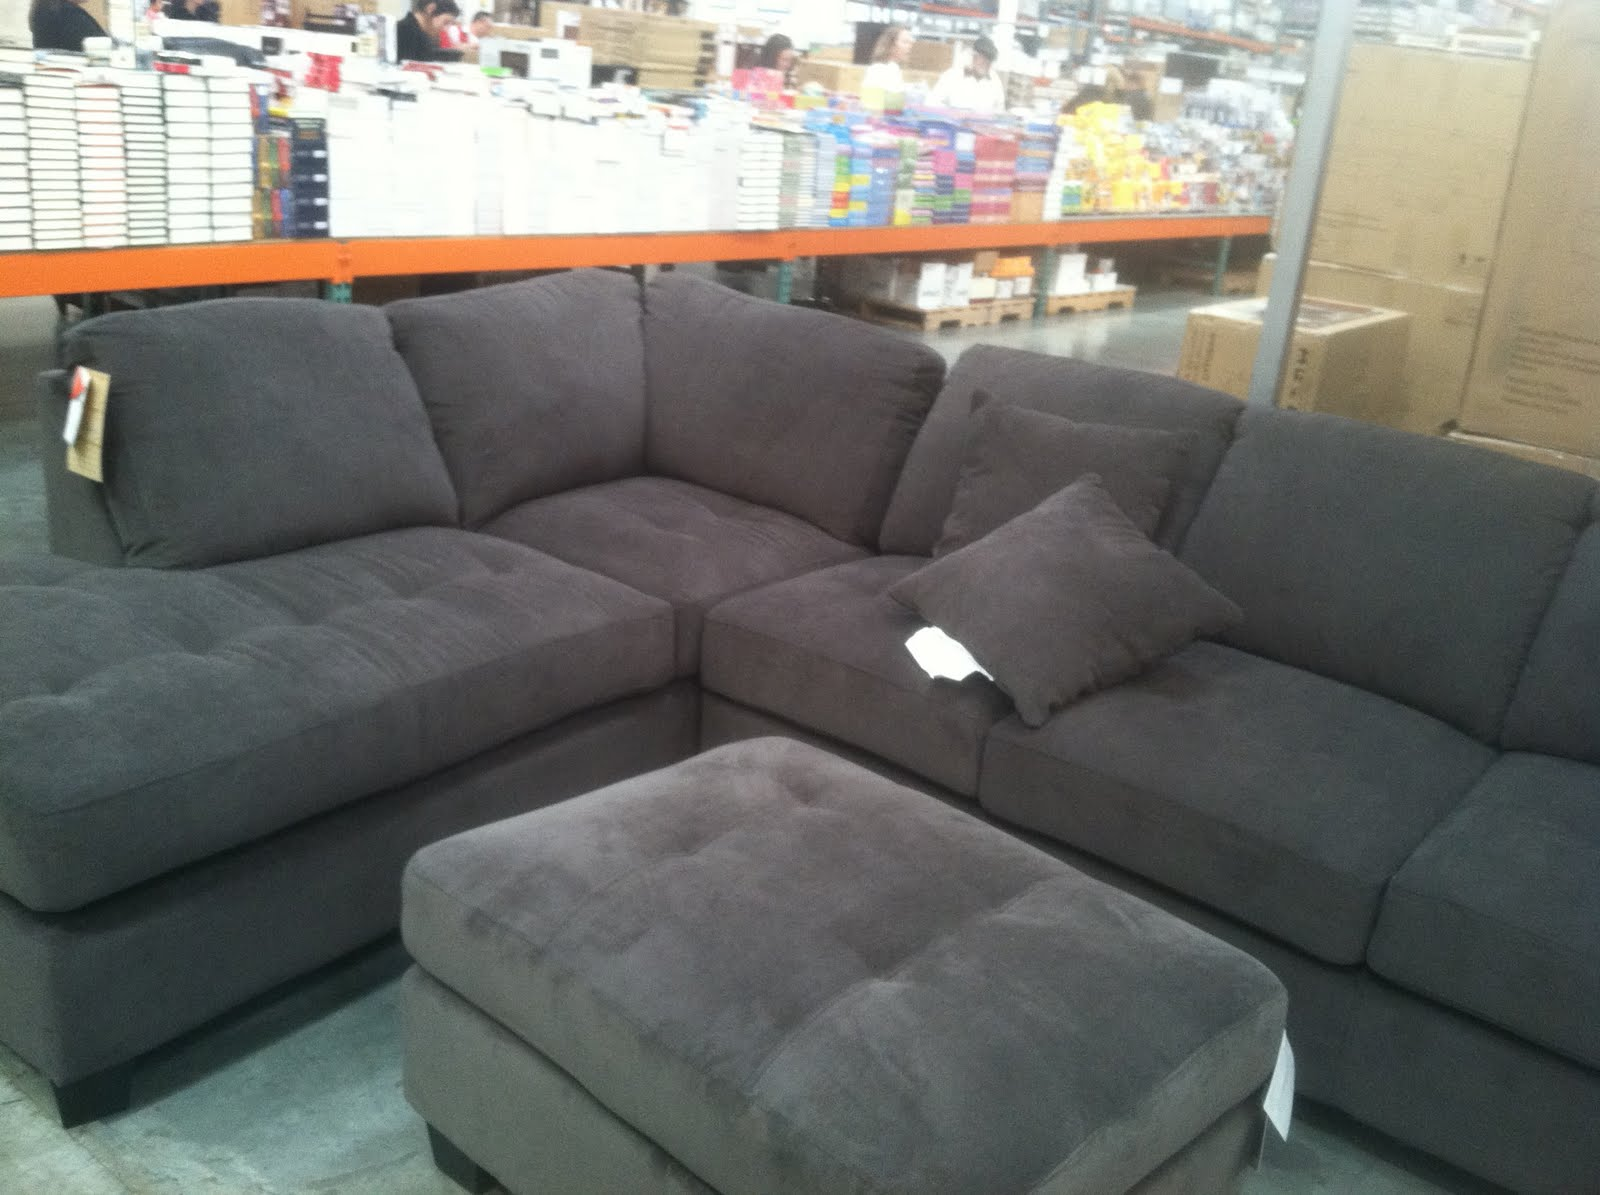 Recliner Sectional | Costco Couches | Costco Leather Sectional